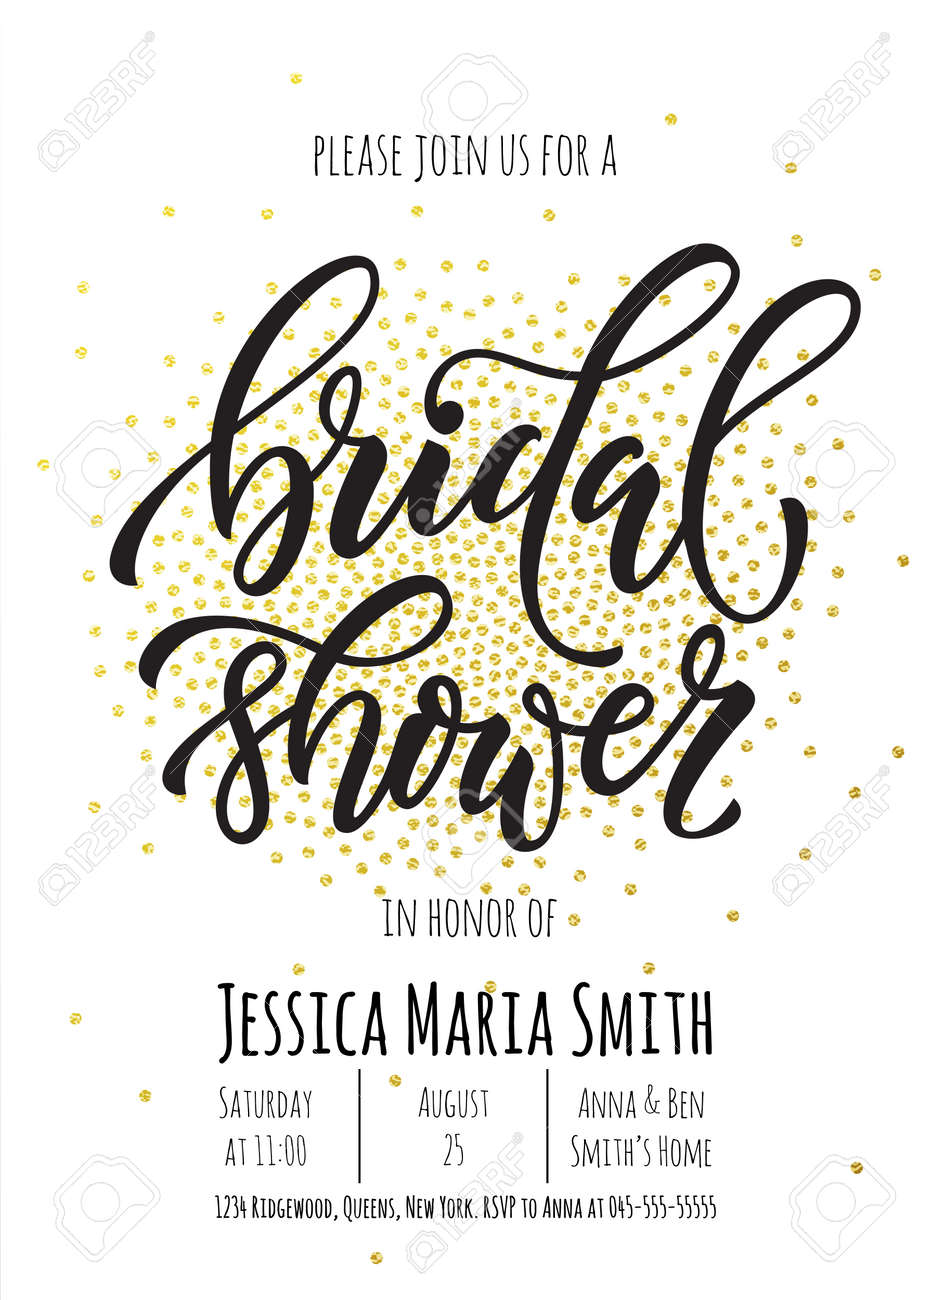 bridal shower invitation card template classic gold calligraphy vector lettering white background with golden